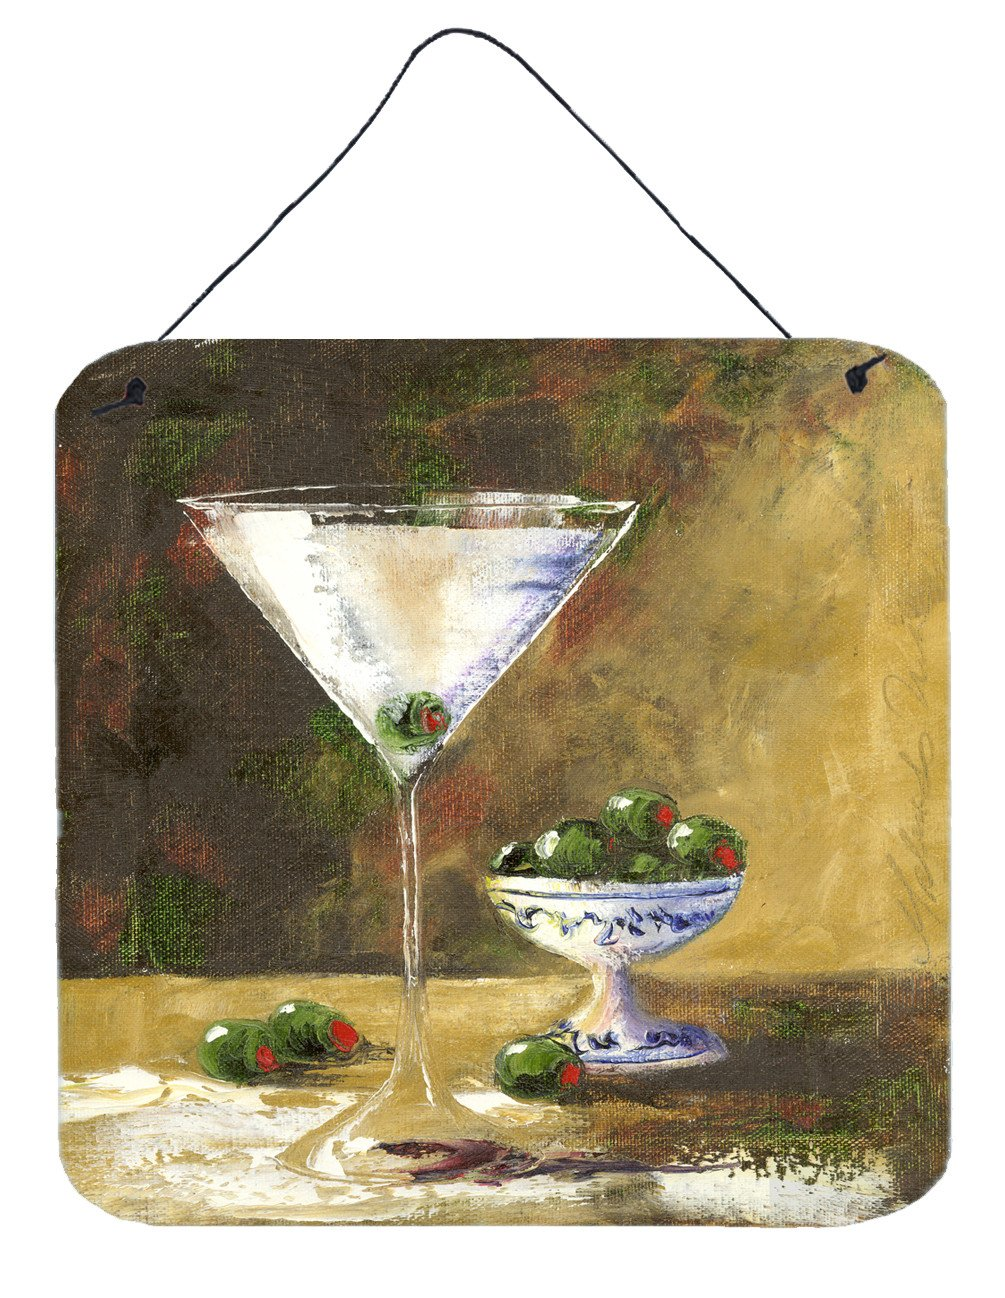 Olive Martini by Malenda Trick Wall or Door Hanging Prints TMTR0033DS66 by Caroline's Treasures